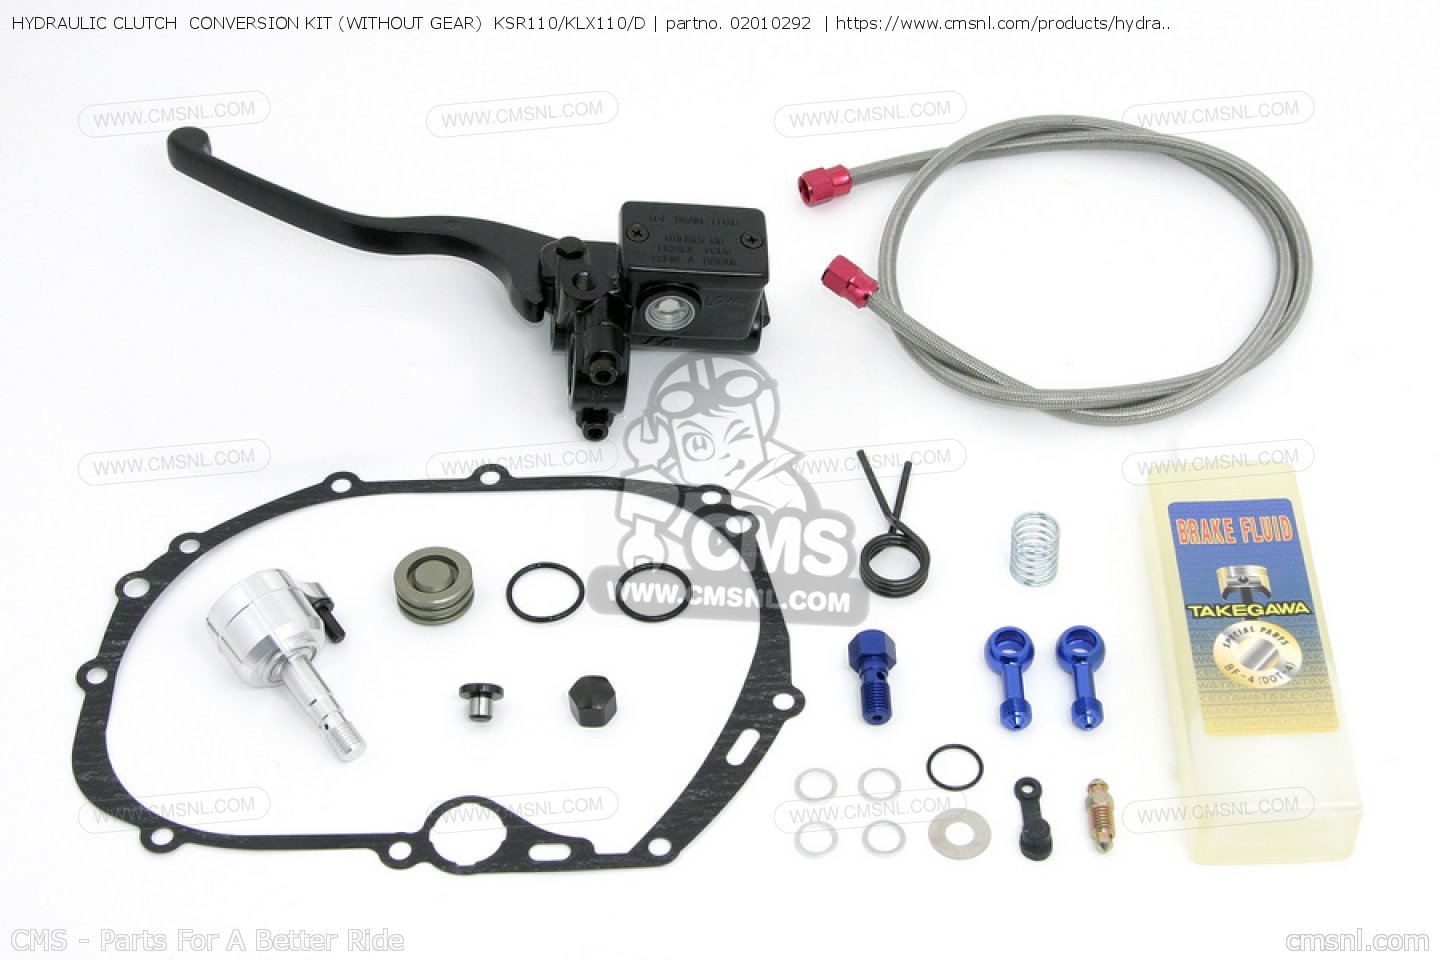 HYDRAULIC CLUTCH CONVERSION KIT (WITHOUT GEAR) KSR110/KLX110/D